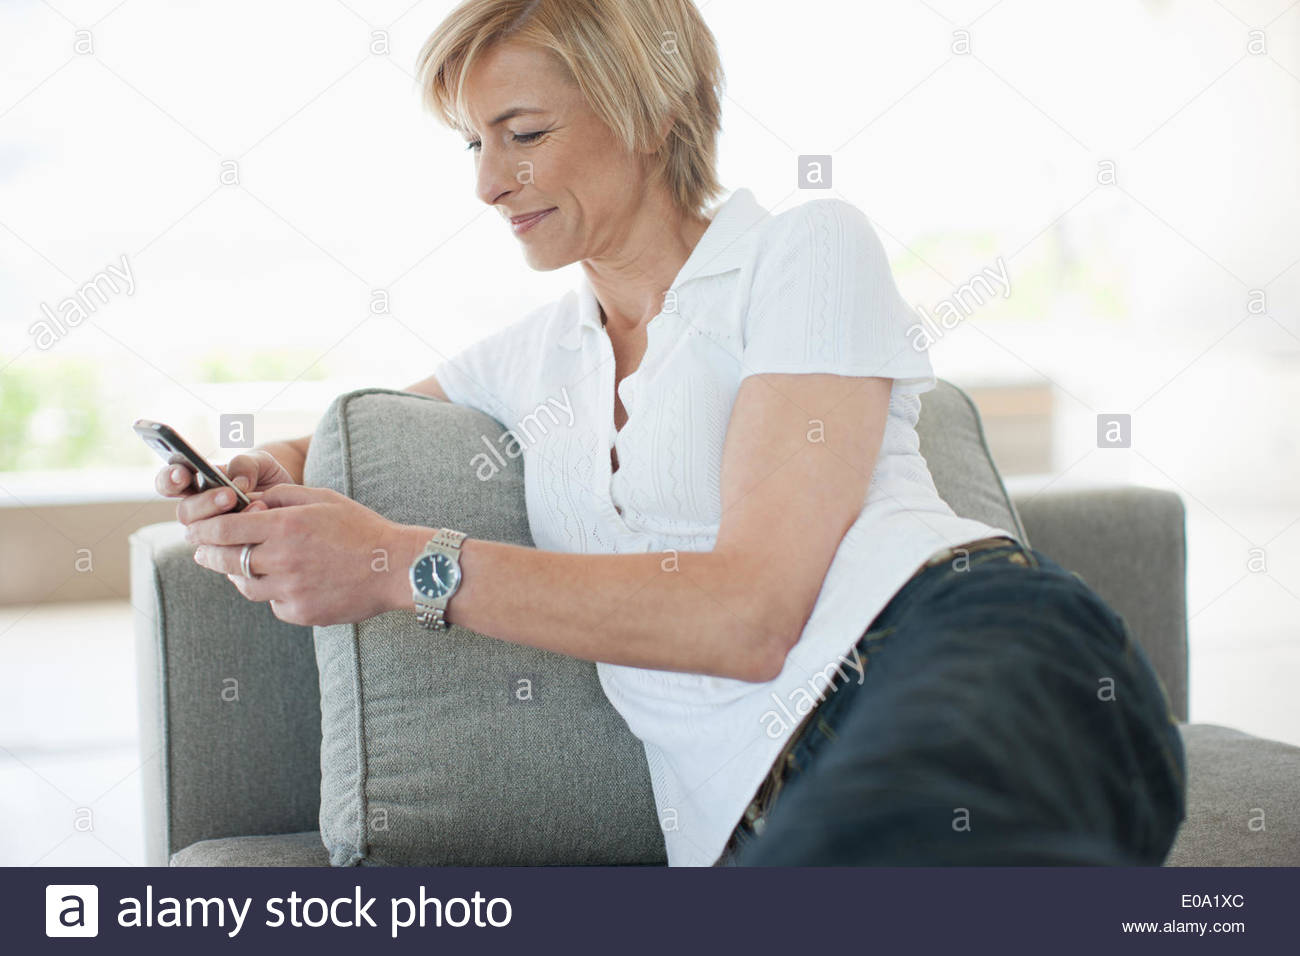 Woman text messaging on cell phone - Stock Image